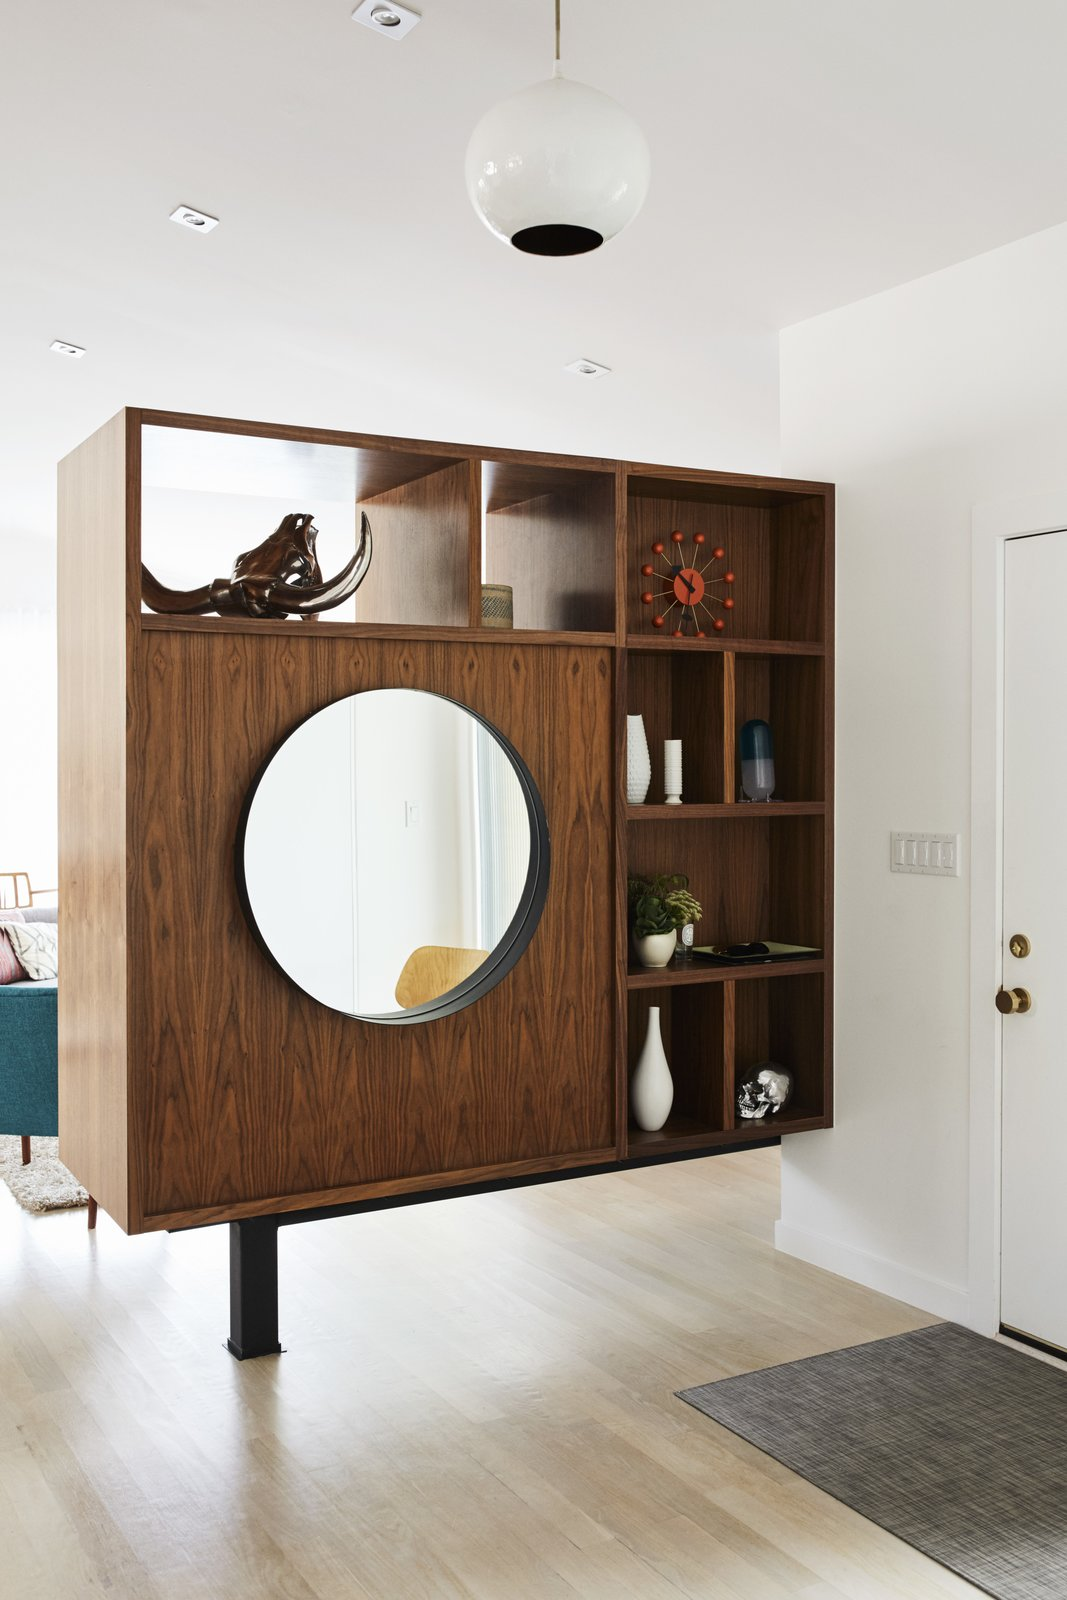 To break up the long living room, Pettit created a walnut bookcase at the entrance. Tagged: Storage and Shelves.  Best Storage Photos from Midcentury Mashup: A 1950s Ranch House in Chicago Gets a Palm Springs-Style Butterfly Roof